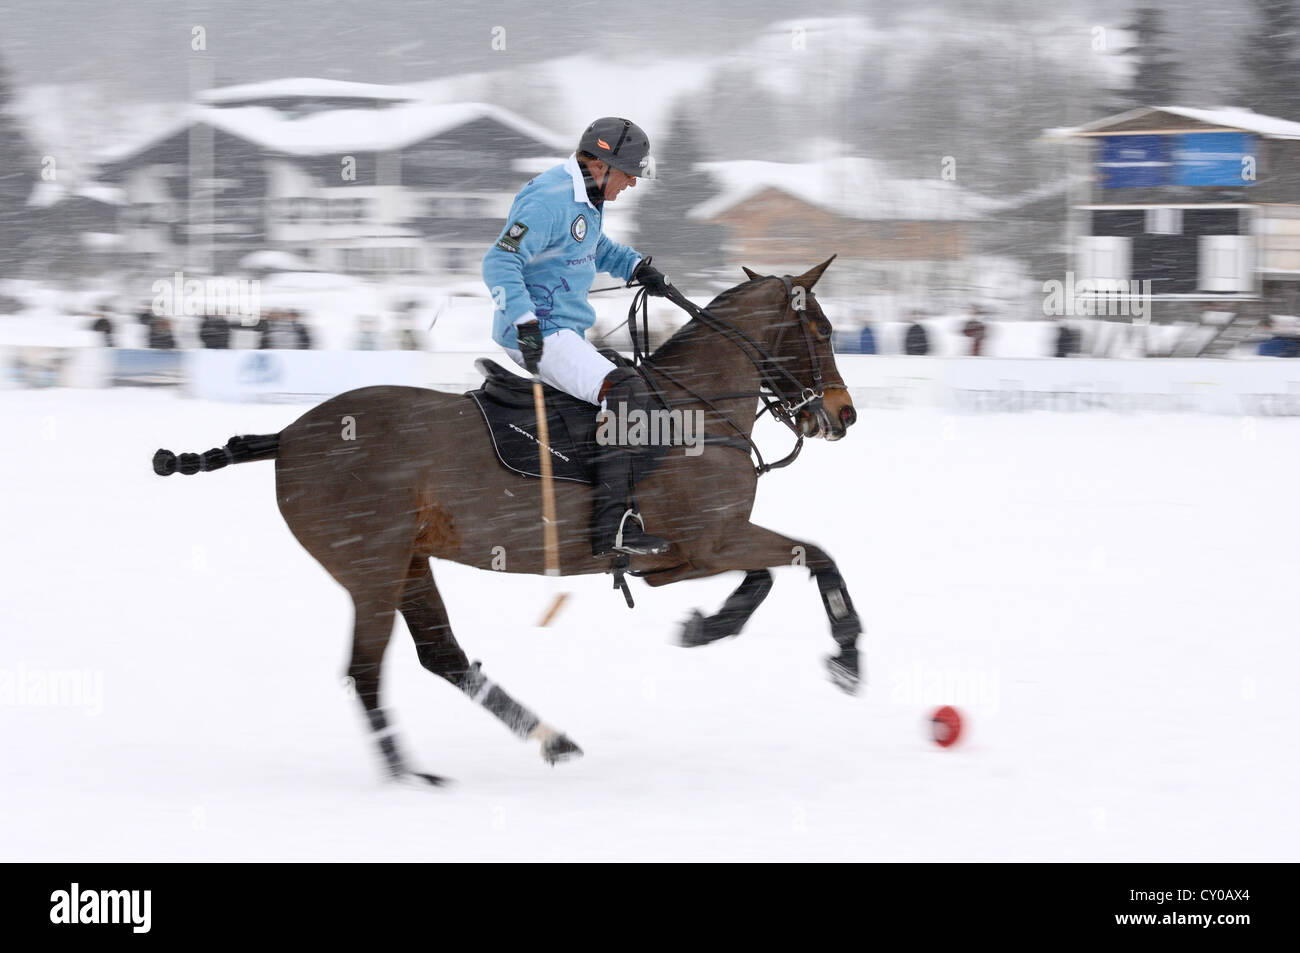 uwe schroeder of team tom tailor riding through the snow polo stock photo royalty free image. Black Bedroom Furniture Sets. Home Design Ideas